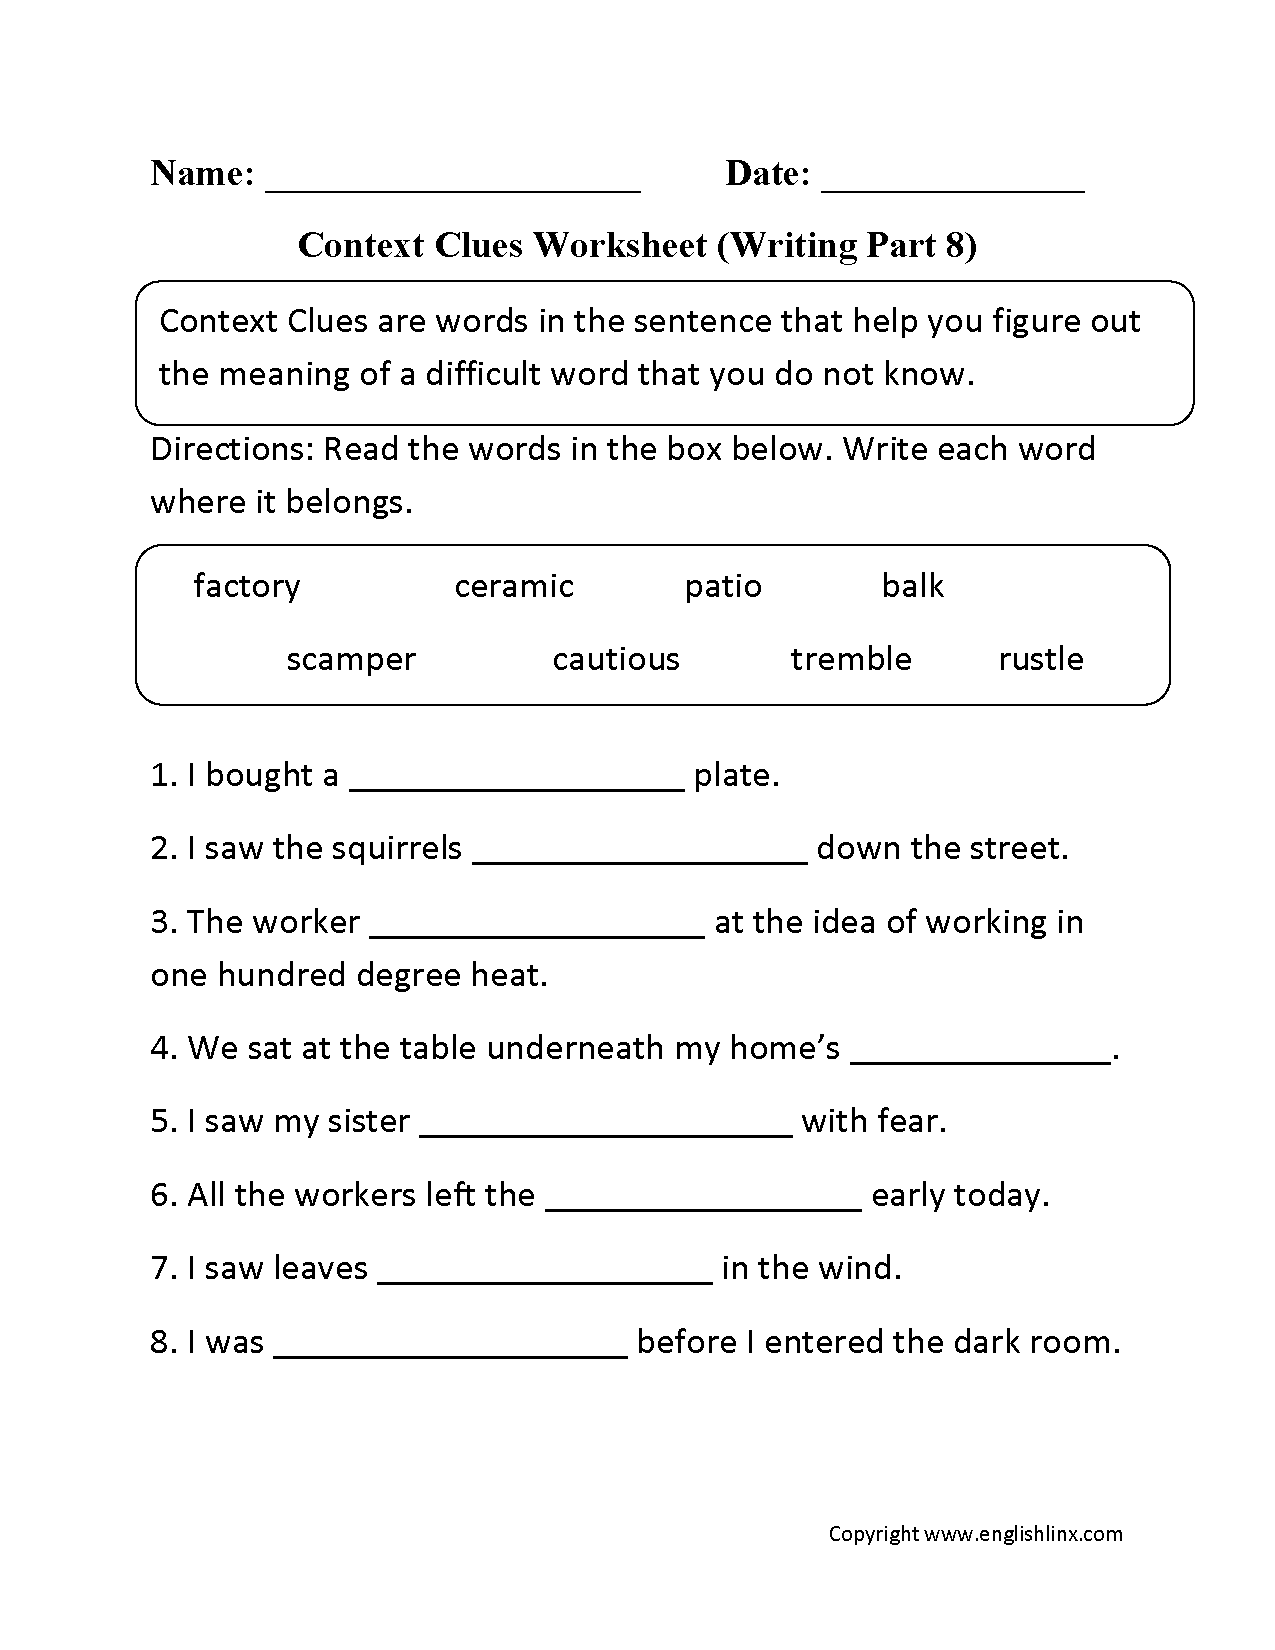 Worksheets Context Clues Worksheets context clues worksheets worksheet writing part 8 intermediate